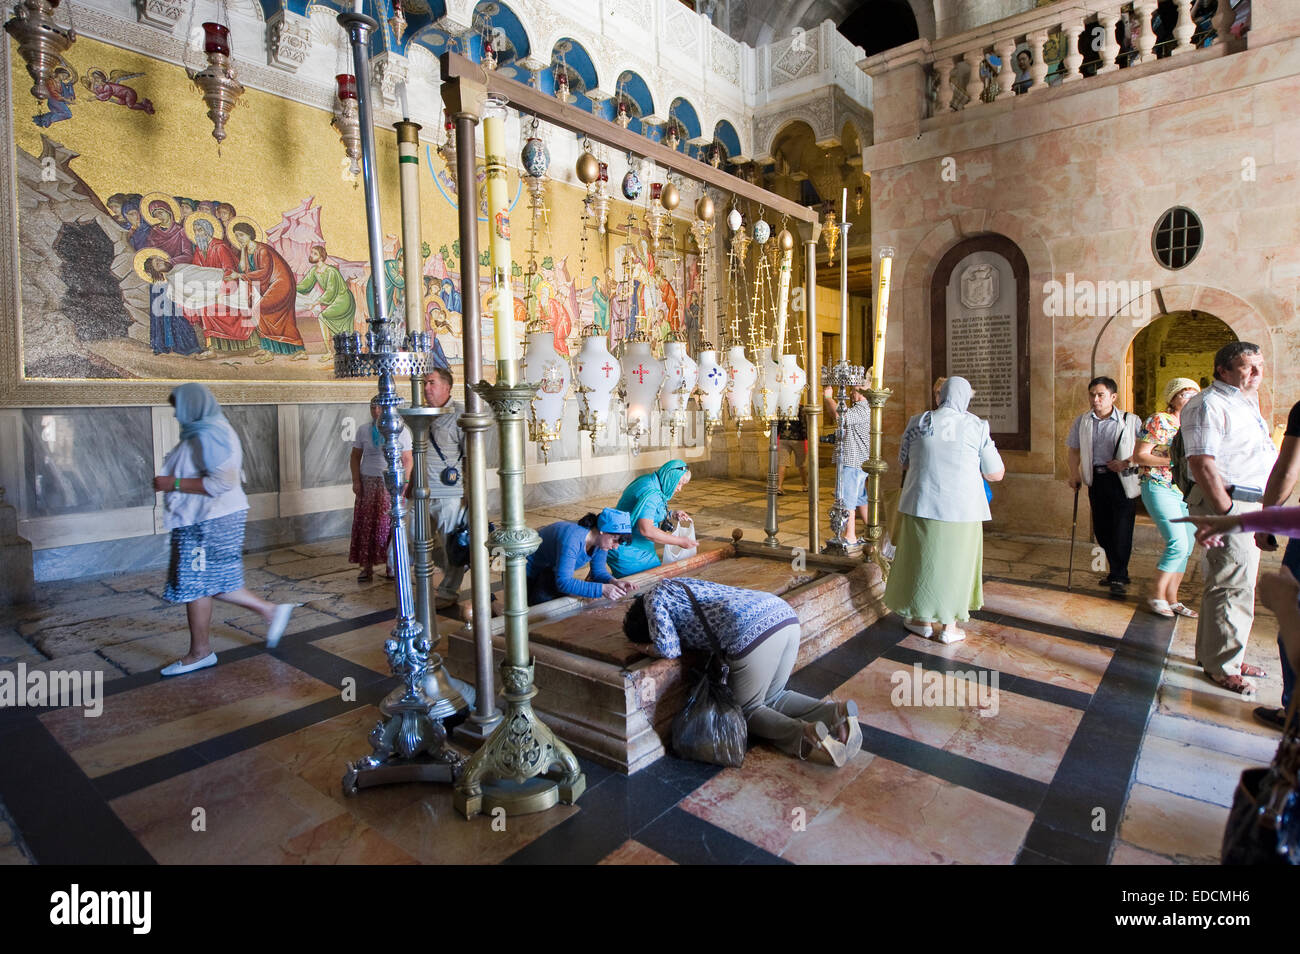 The stone of the Anointing at the Church of the Holy Sepulchre. Also known as 'The Stone of Unction - Stock Image